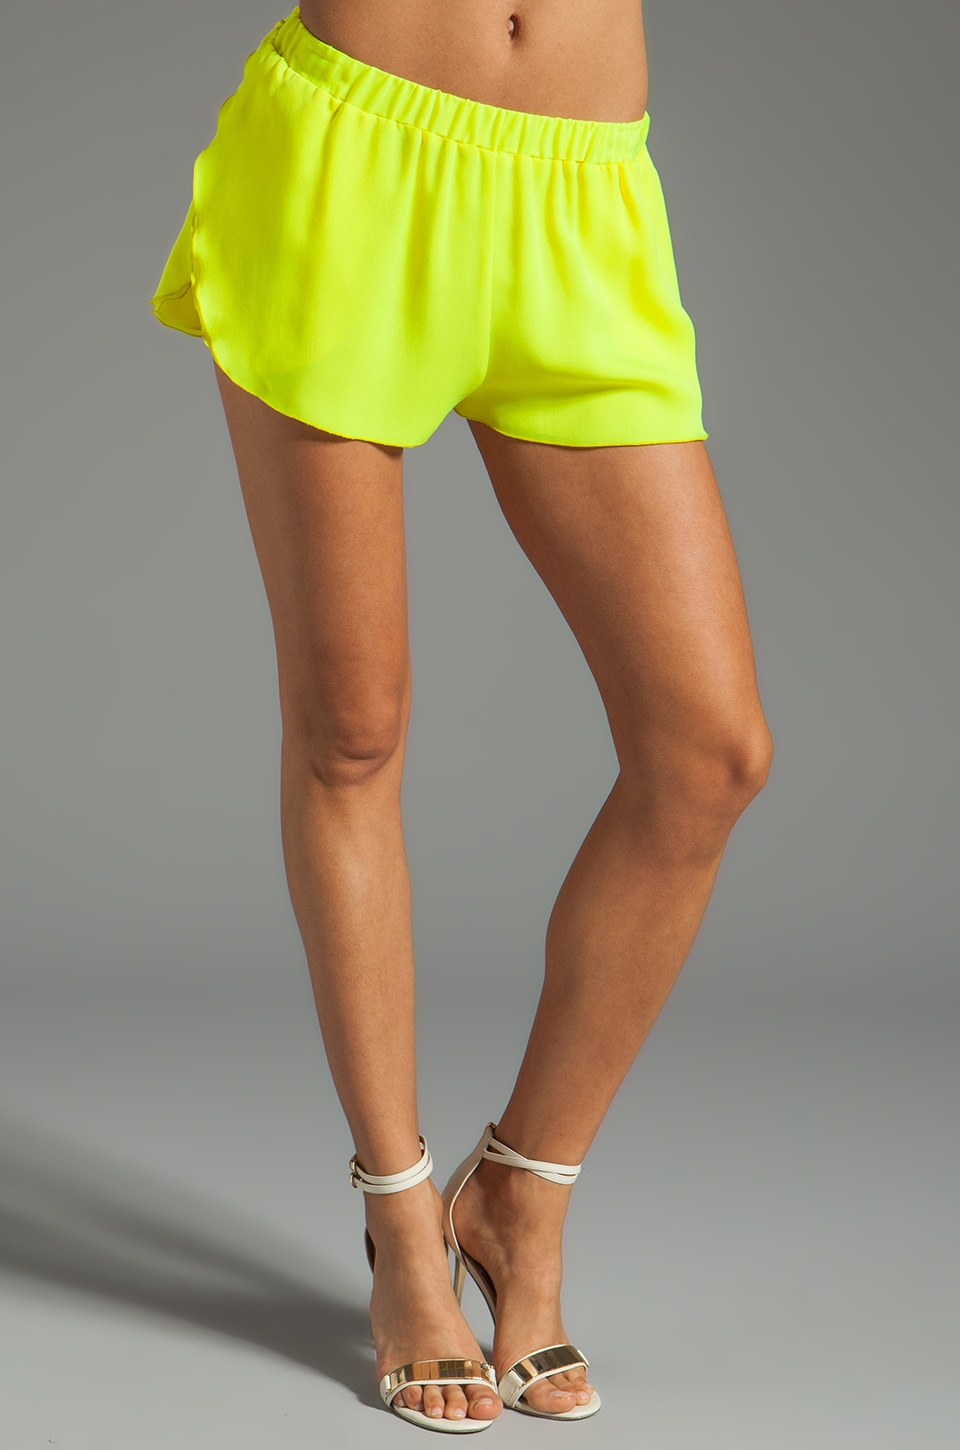 Mason by Michelle Mason Tulip Hem Shorts in Citron